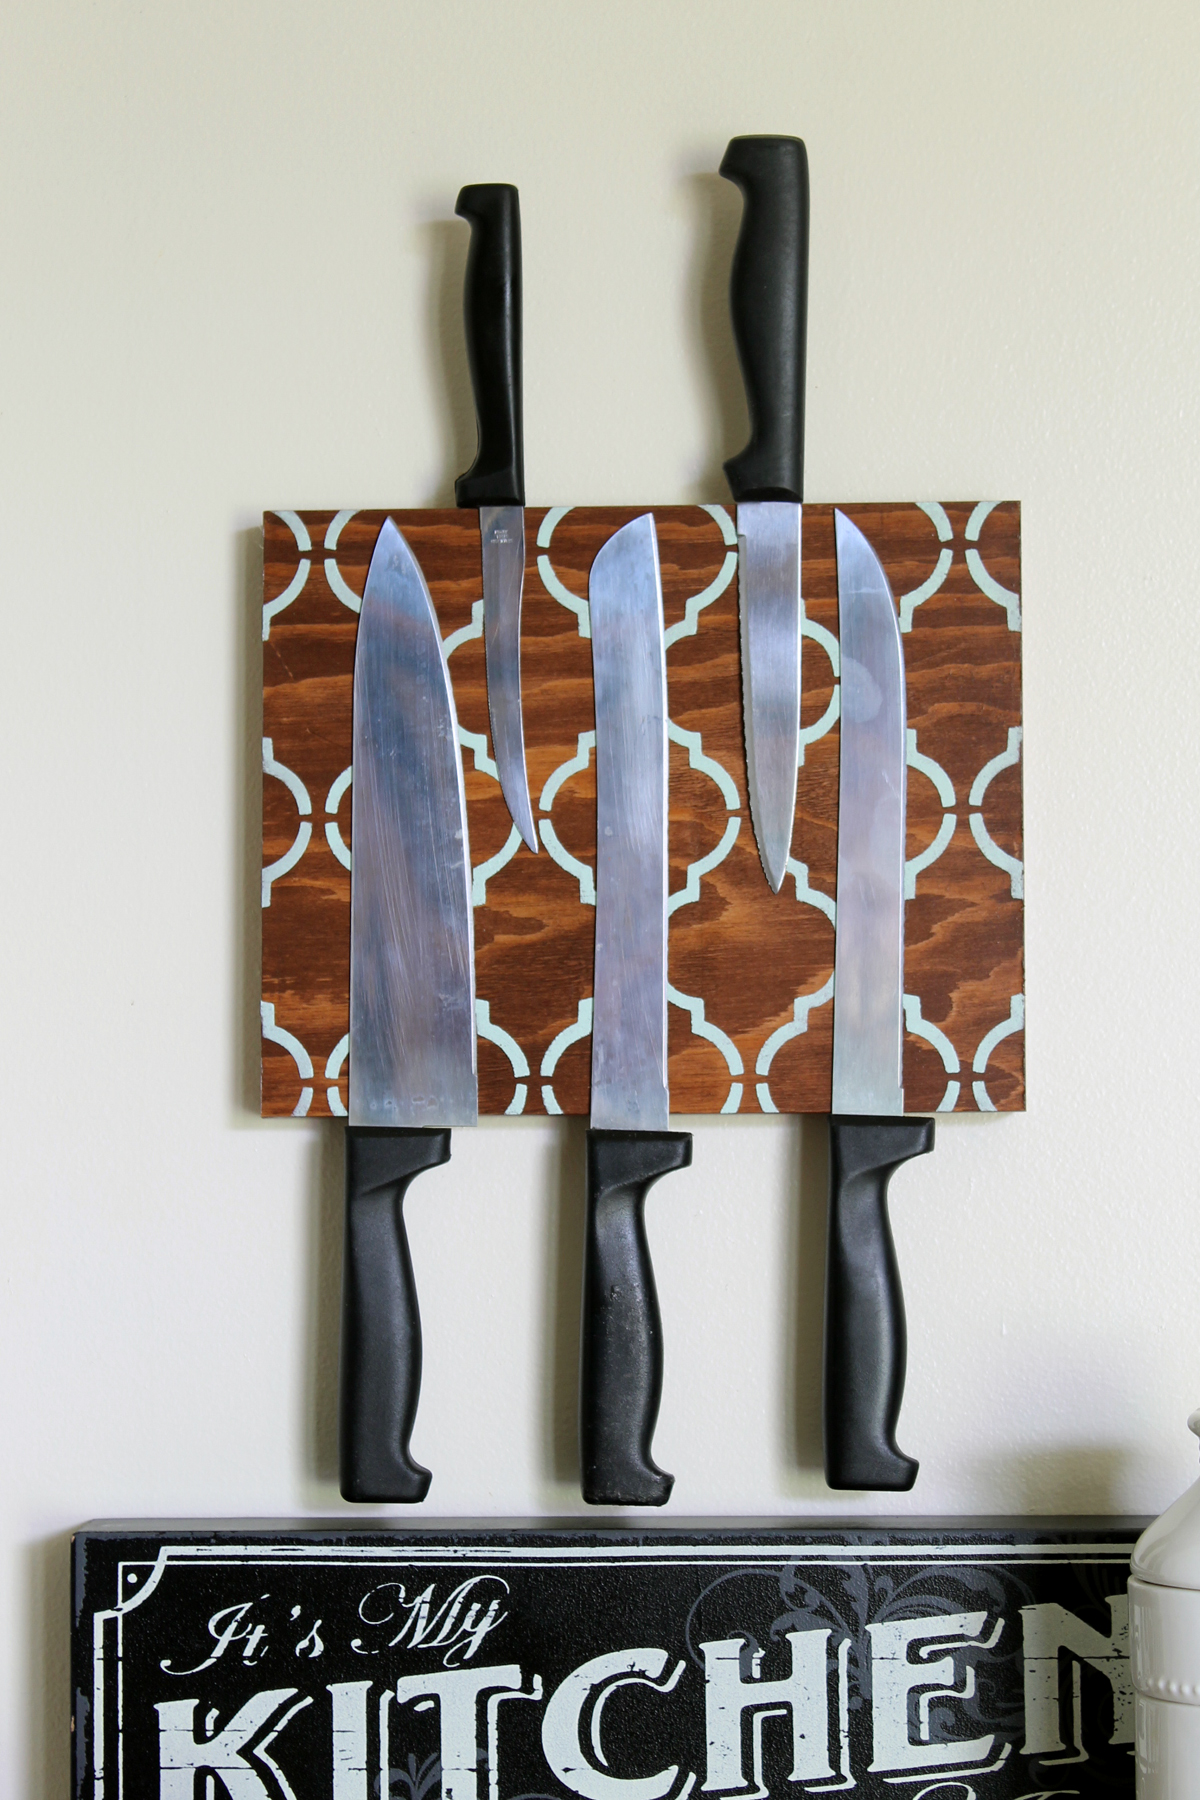 This magnetic knife block is a fun DIY project that looks great in your kitchen!